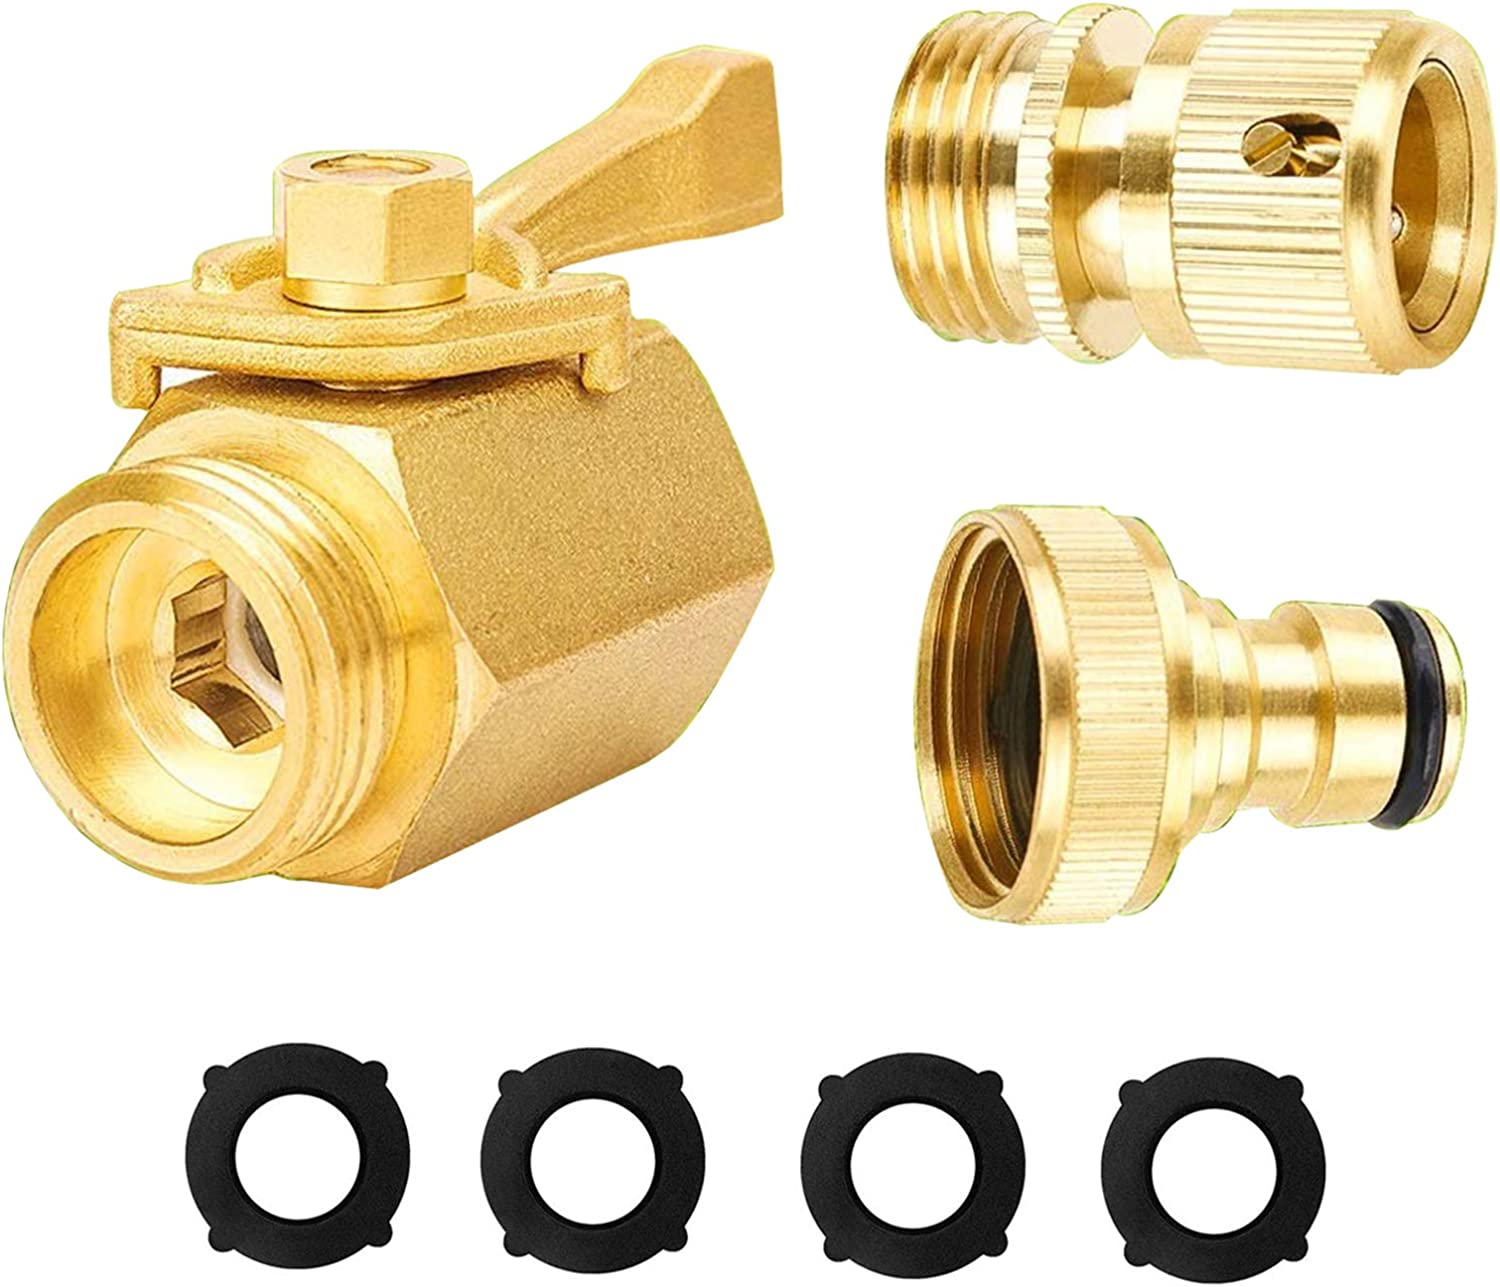 Heavy Duty 3/4 Inch Solid Brass Quick Connector and Shut Off kit. Garden Hose Quick Connect,with Brass Garden Hose Shut Off Valve